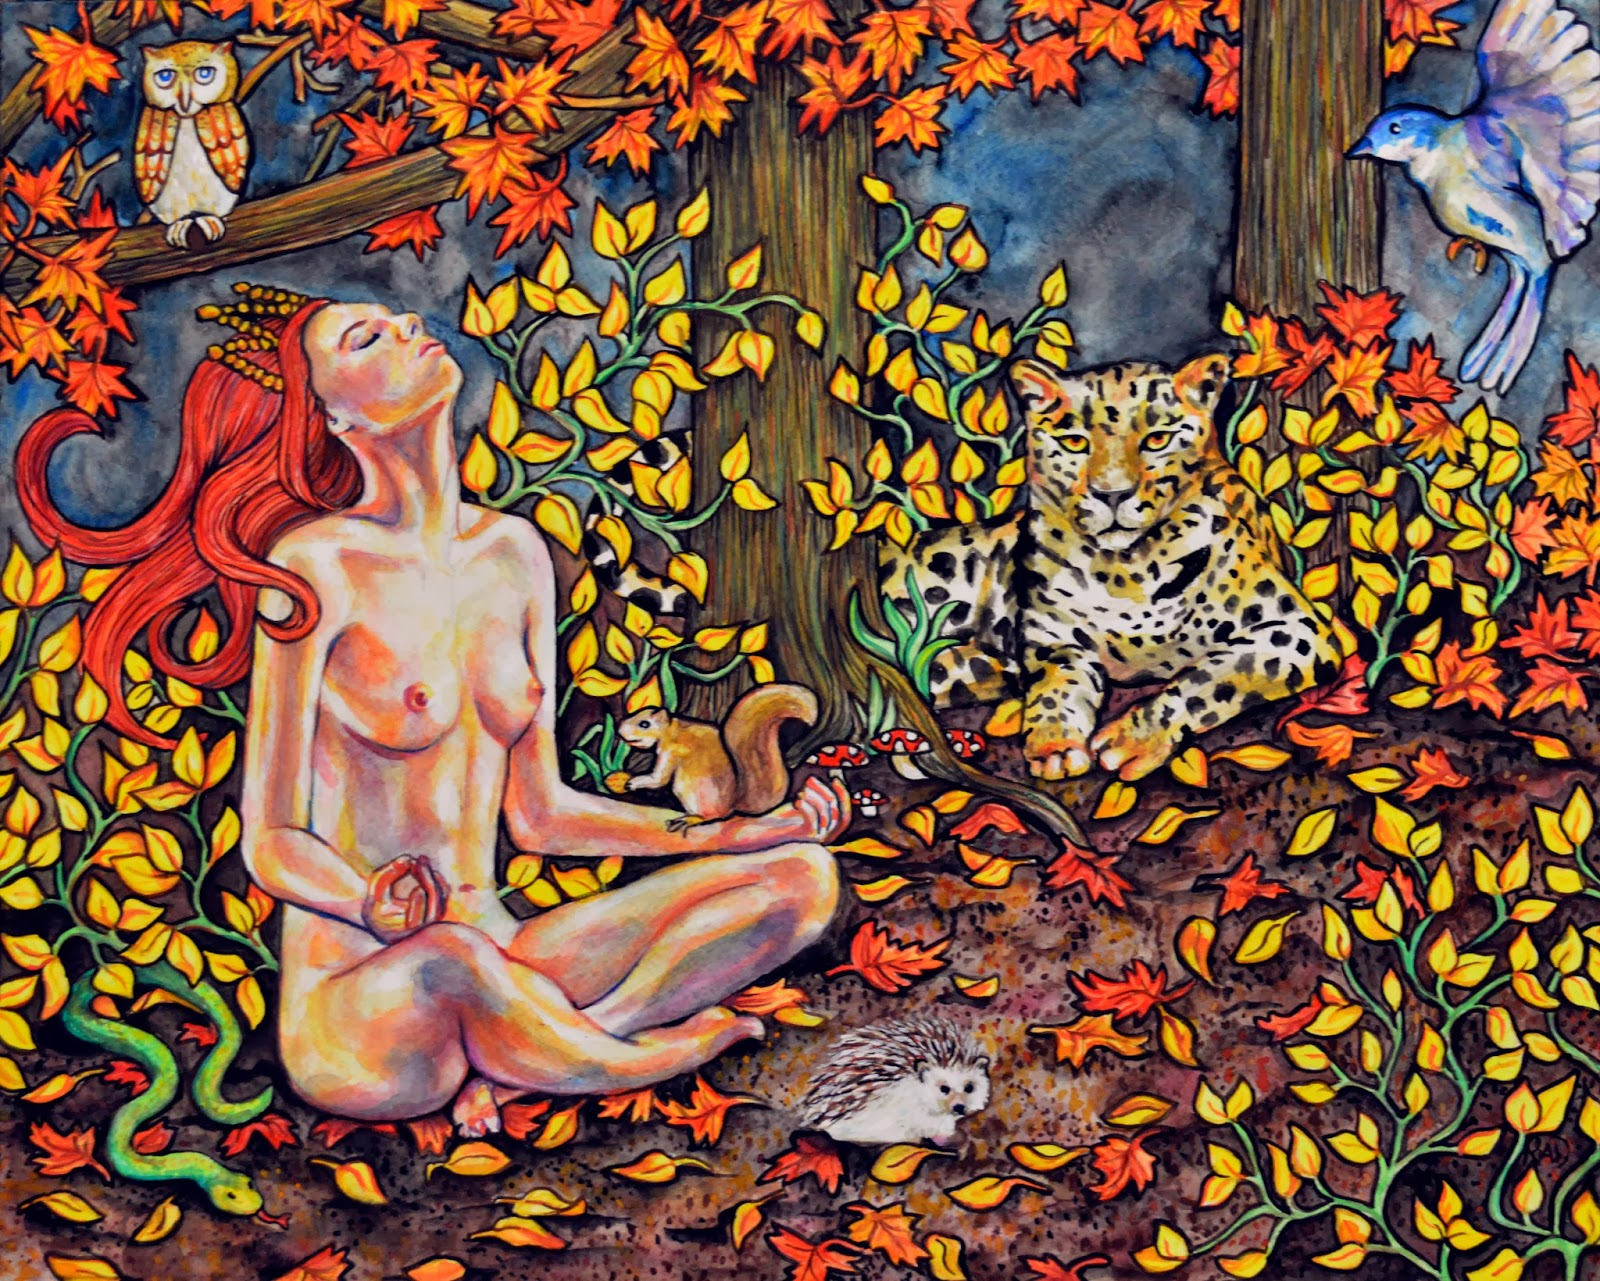 https://www.etsy.com/listing/177821069/original-figurative-autumn-forest